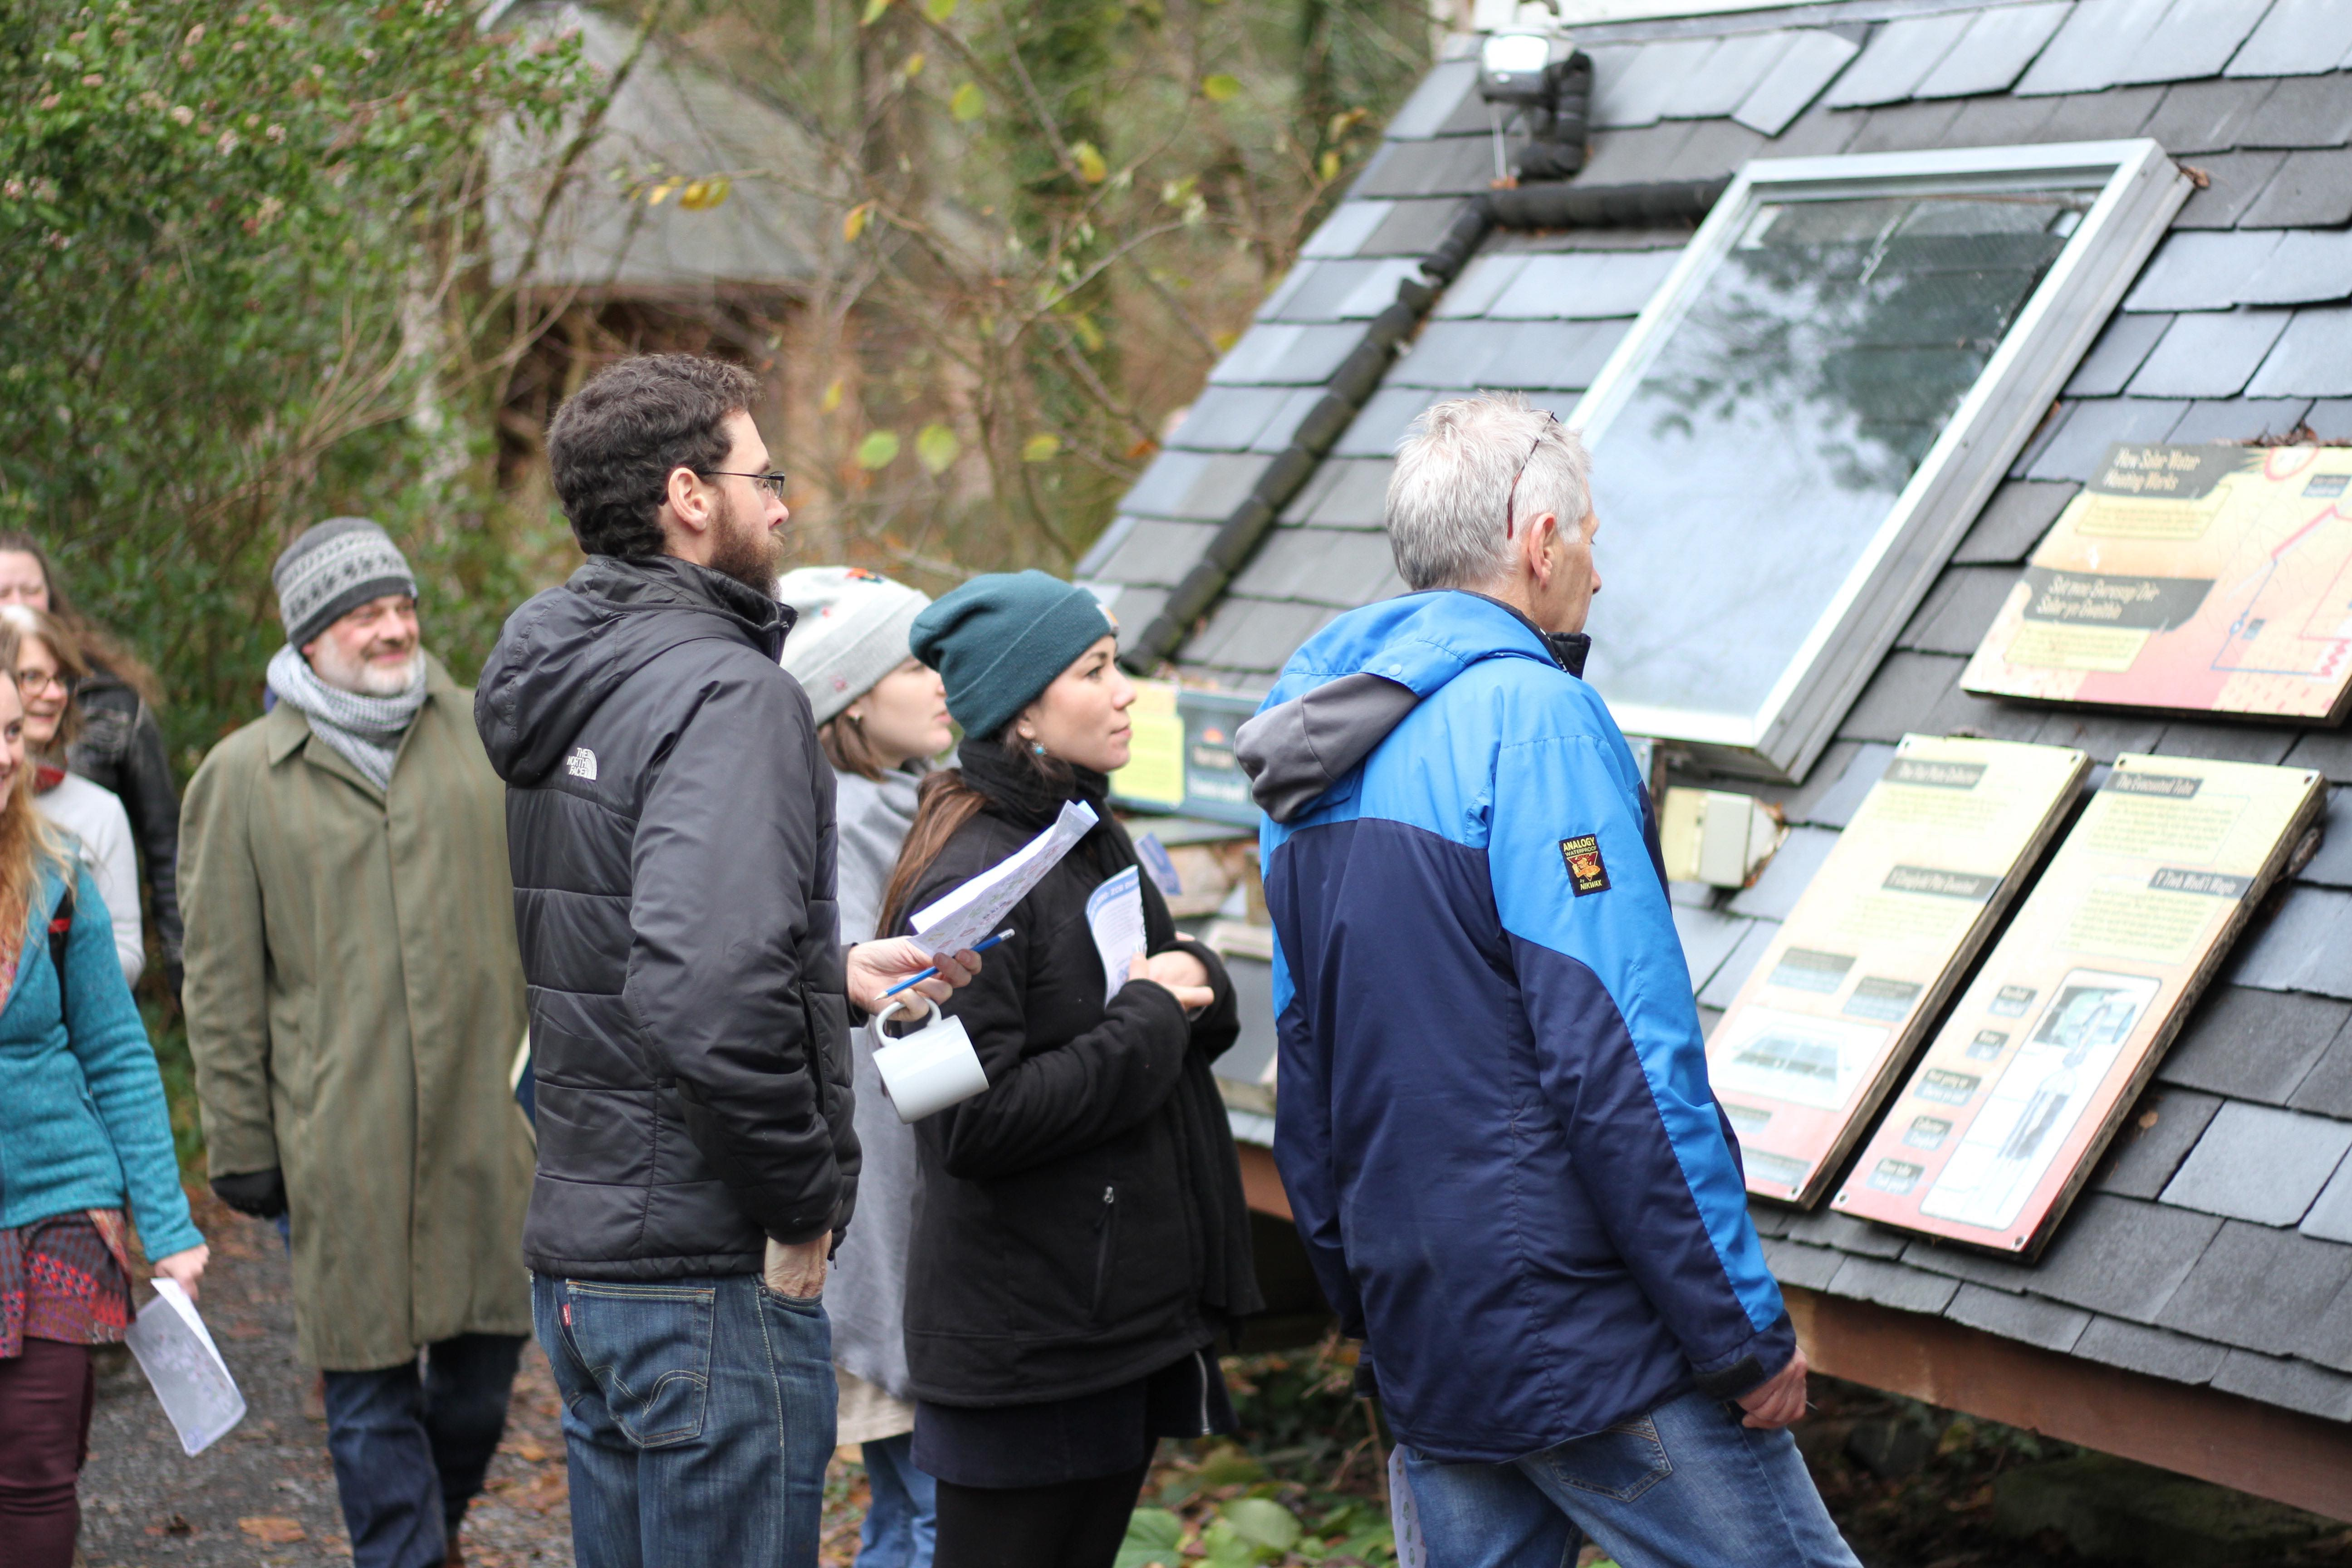 people gathered by a roof, at ground level, learning about heat loss and insulation at the Centre for Alternative Technology